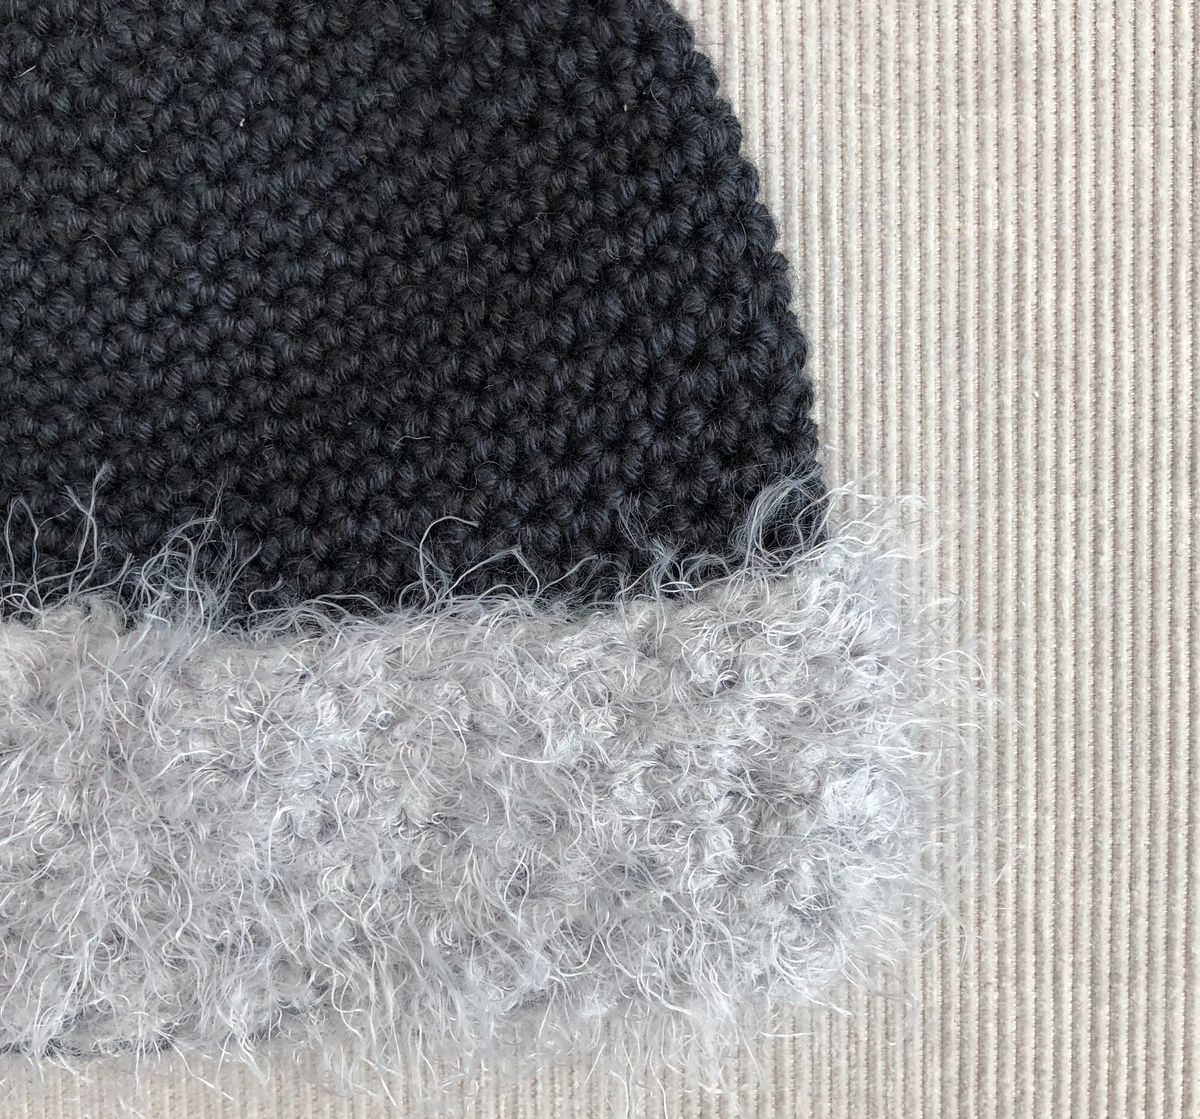 Black baby/toddler beanie hat with grey fur effect brim - product images  of